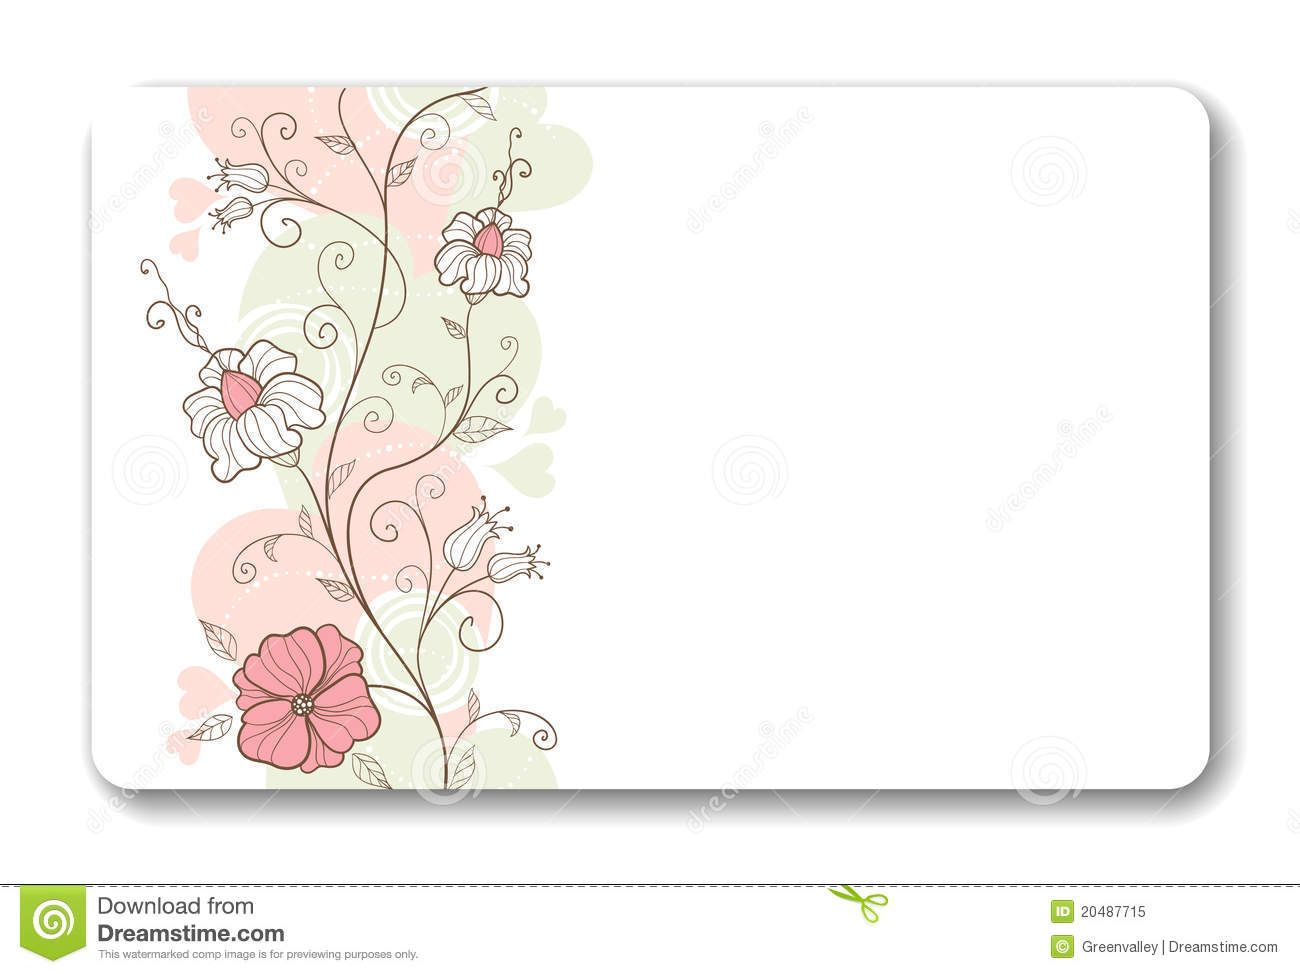 The Amusing Business Card Template 8371 Avery 8376 Microperforated Throughout Business Card Template Open O Visiting Cards Card Design Visiting Card Design